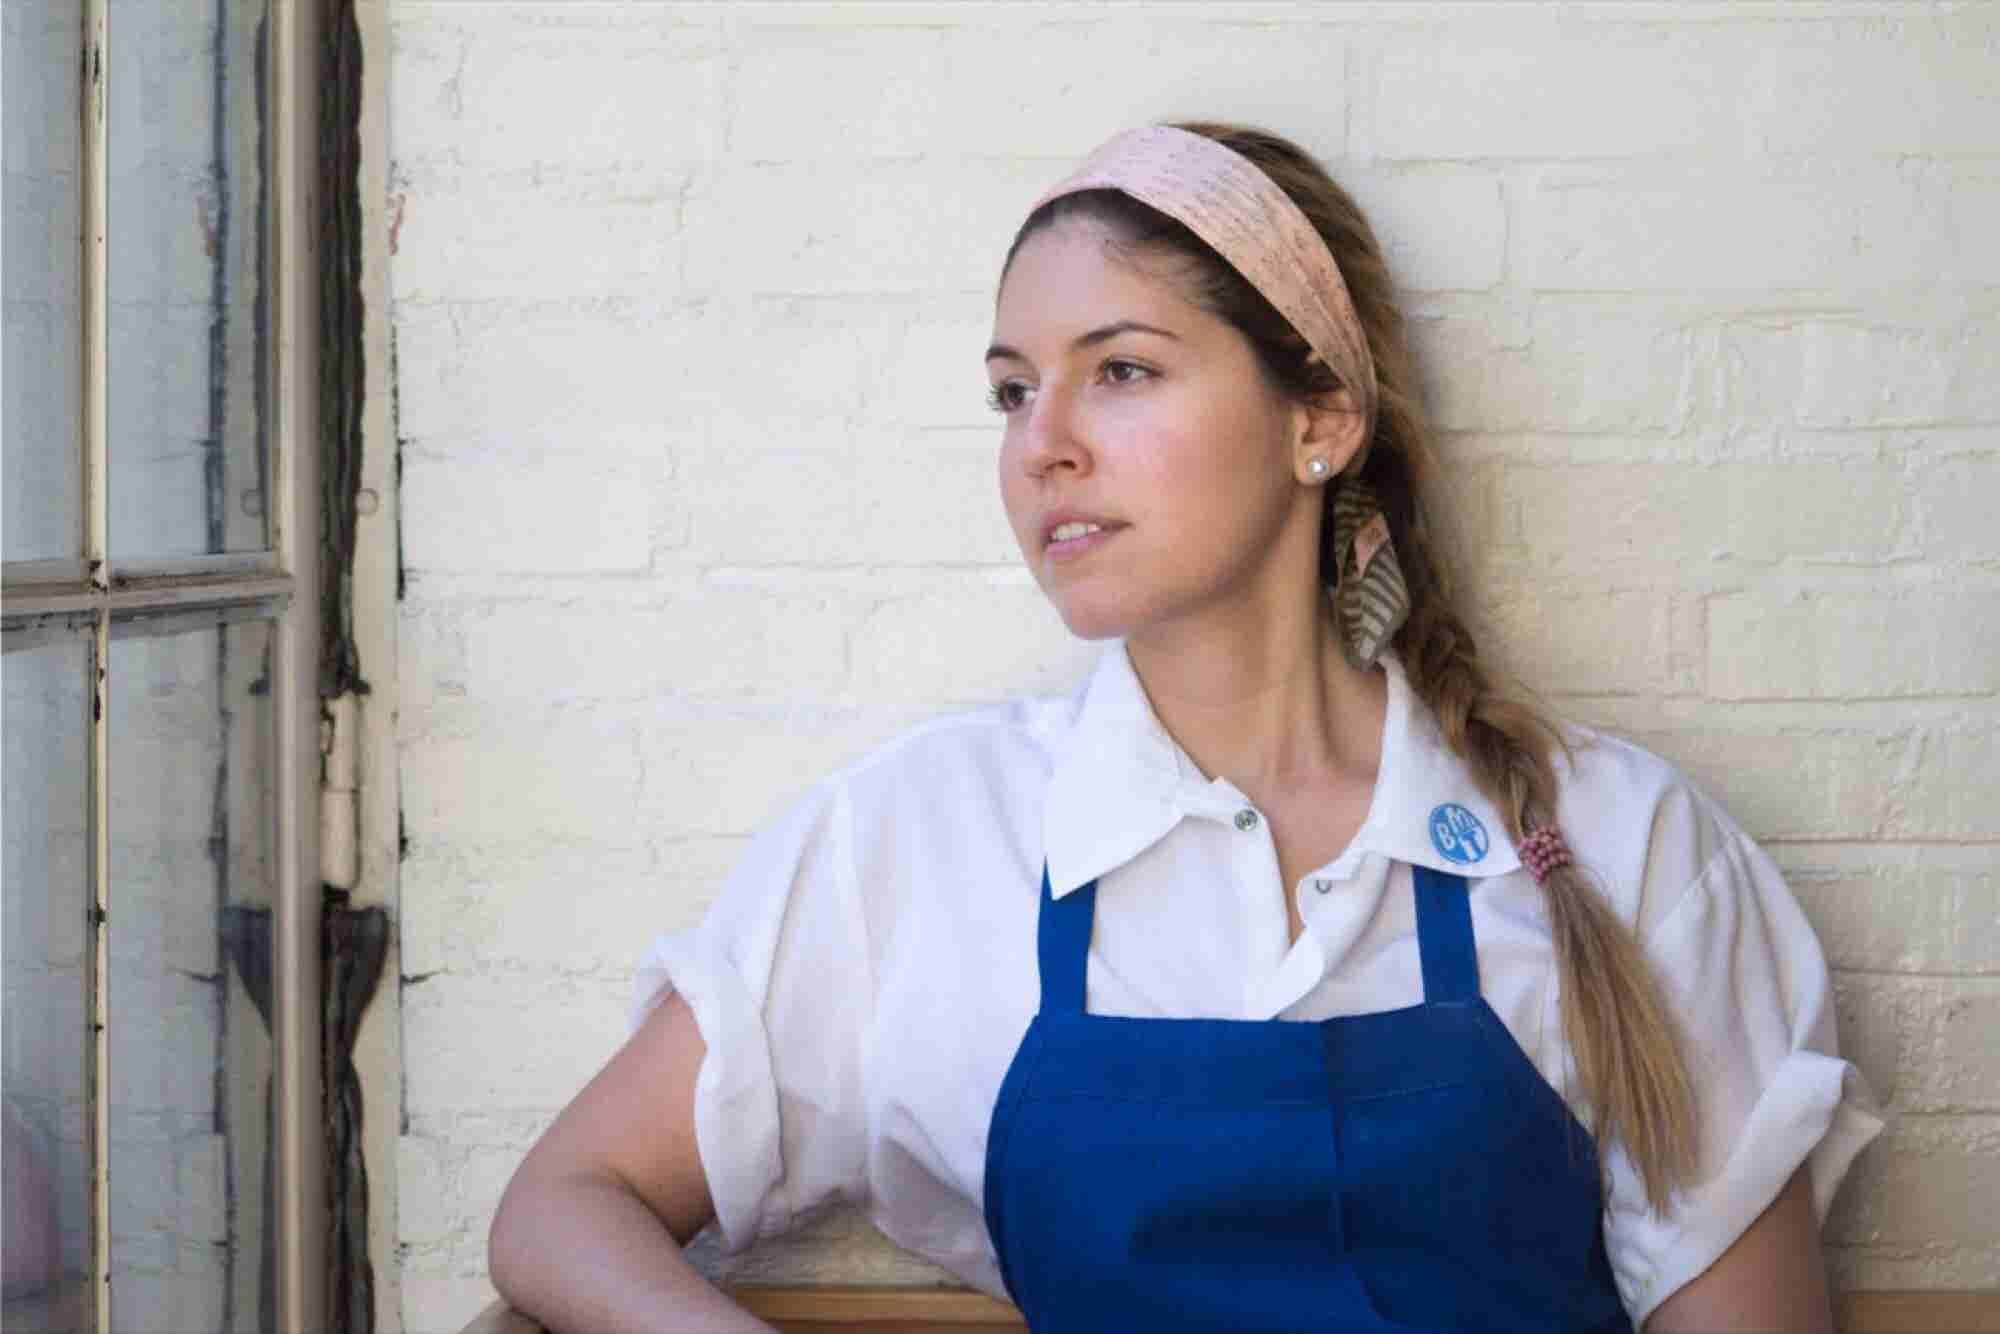 This Venezuelan Chef and Winner of 'Chopped' Sought Political Asylum to Pursue Her Entrepreneurial Dreams